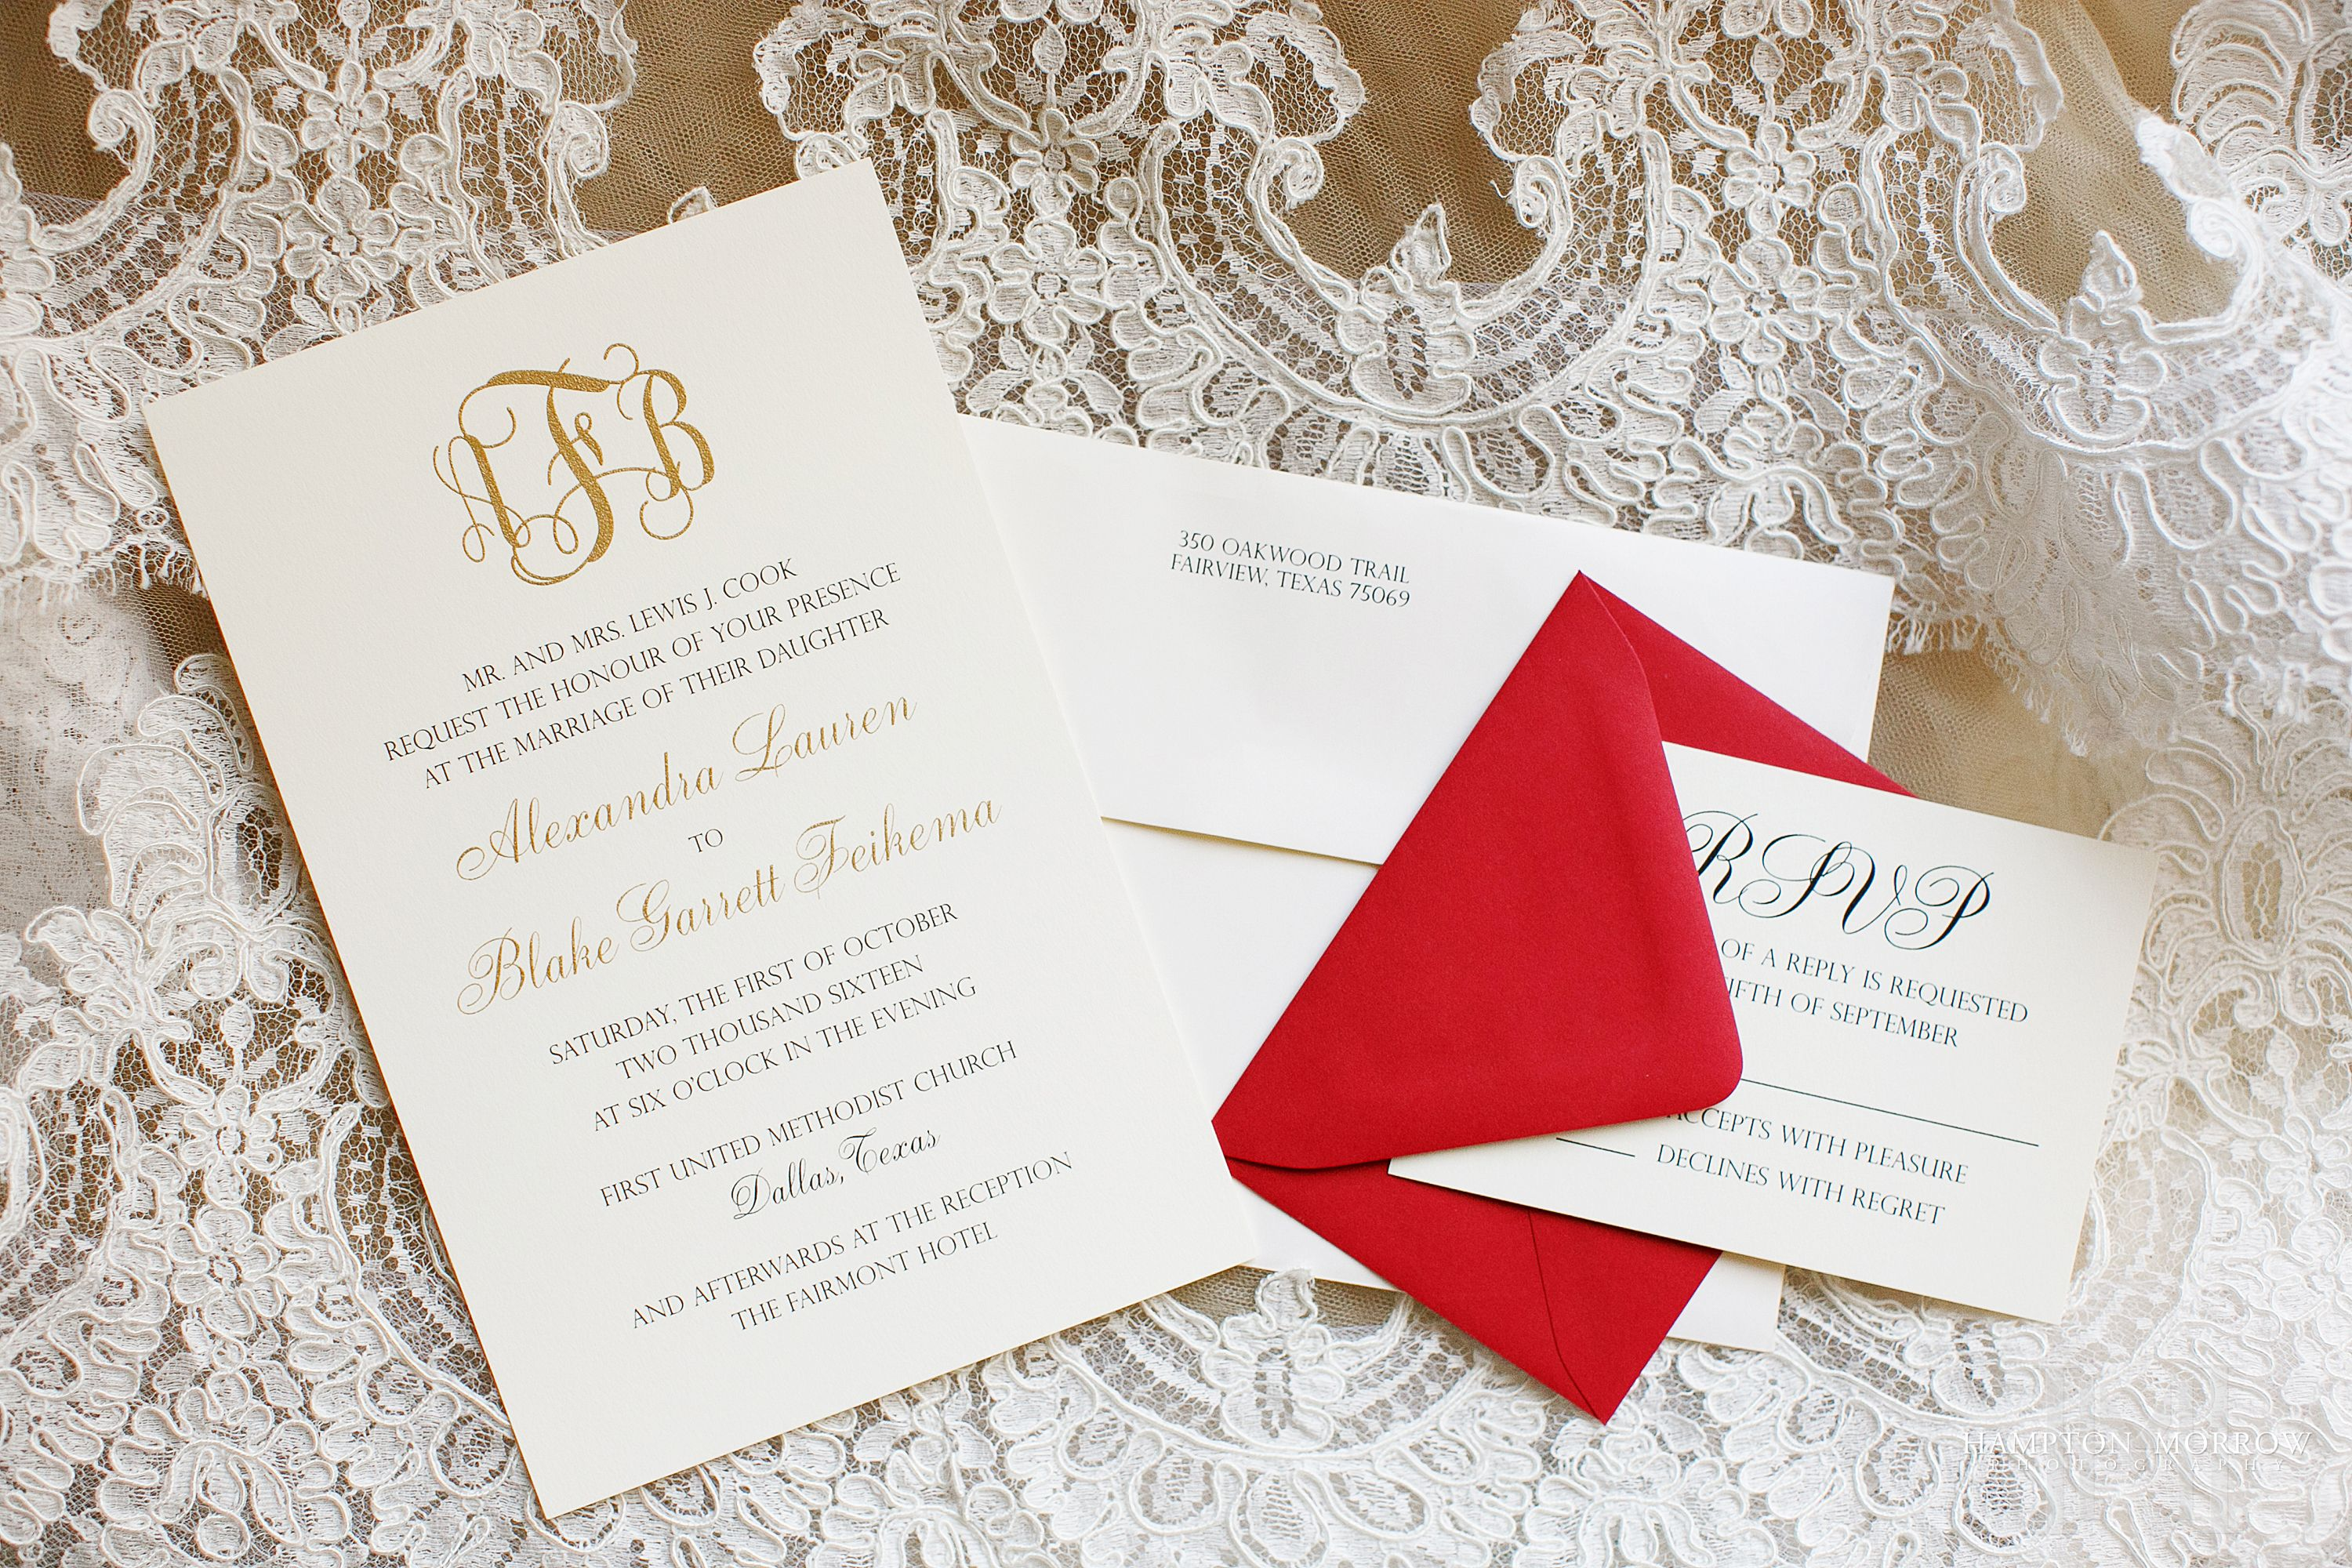 Lexie + Blake: October Wedding with Rich Fall Color Palette | Paper ...